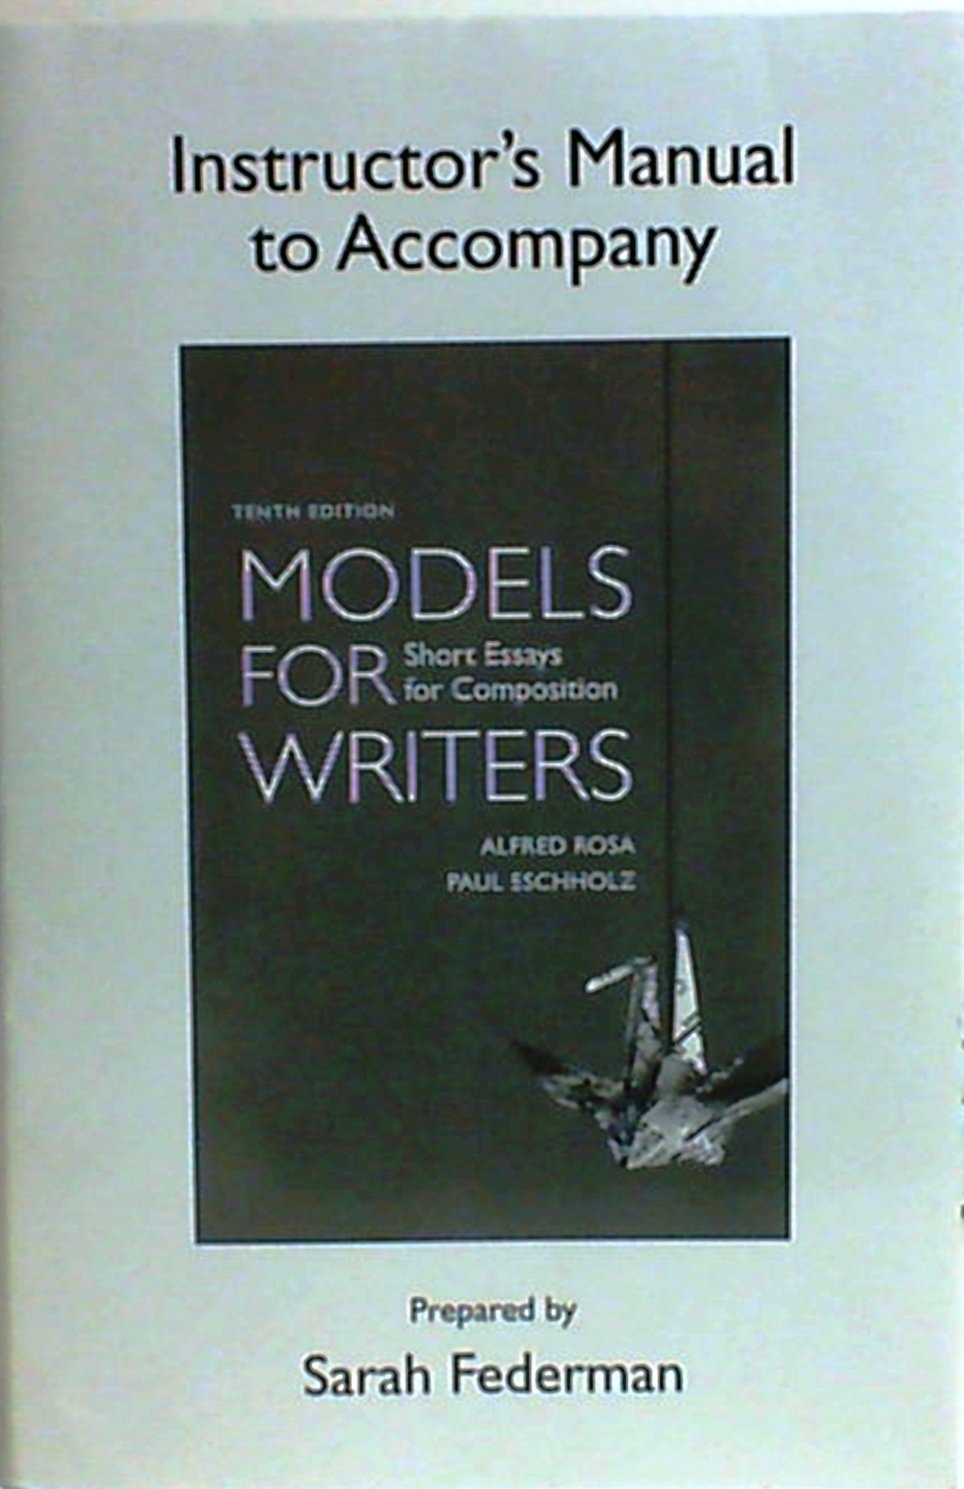 007 Models For Writers Short Essays Composition Essay Example Singular 12th Edition Pdf 13th Full